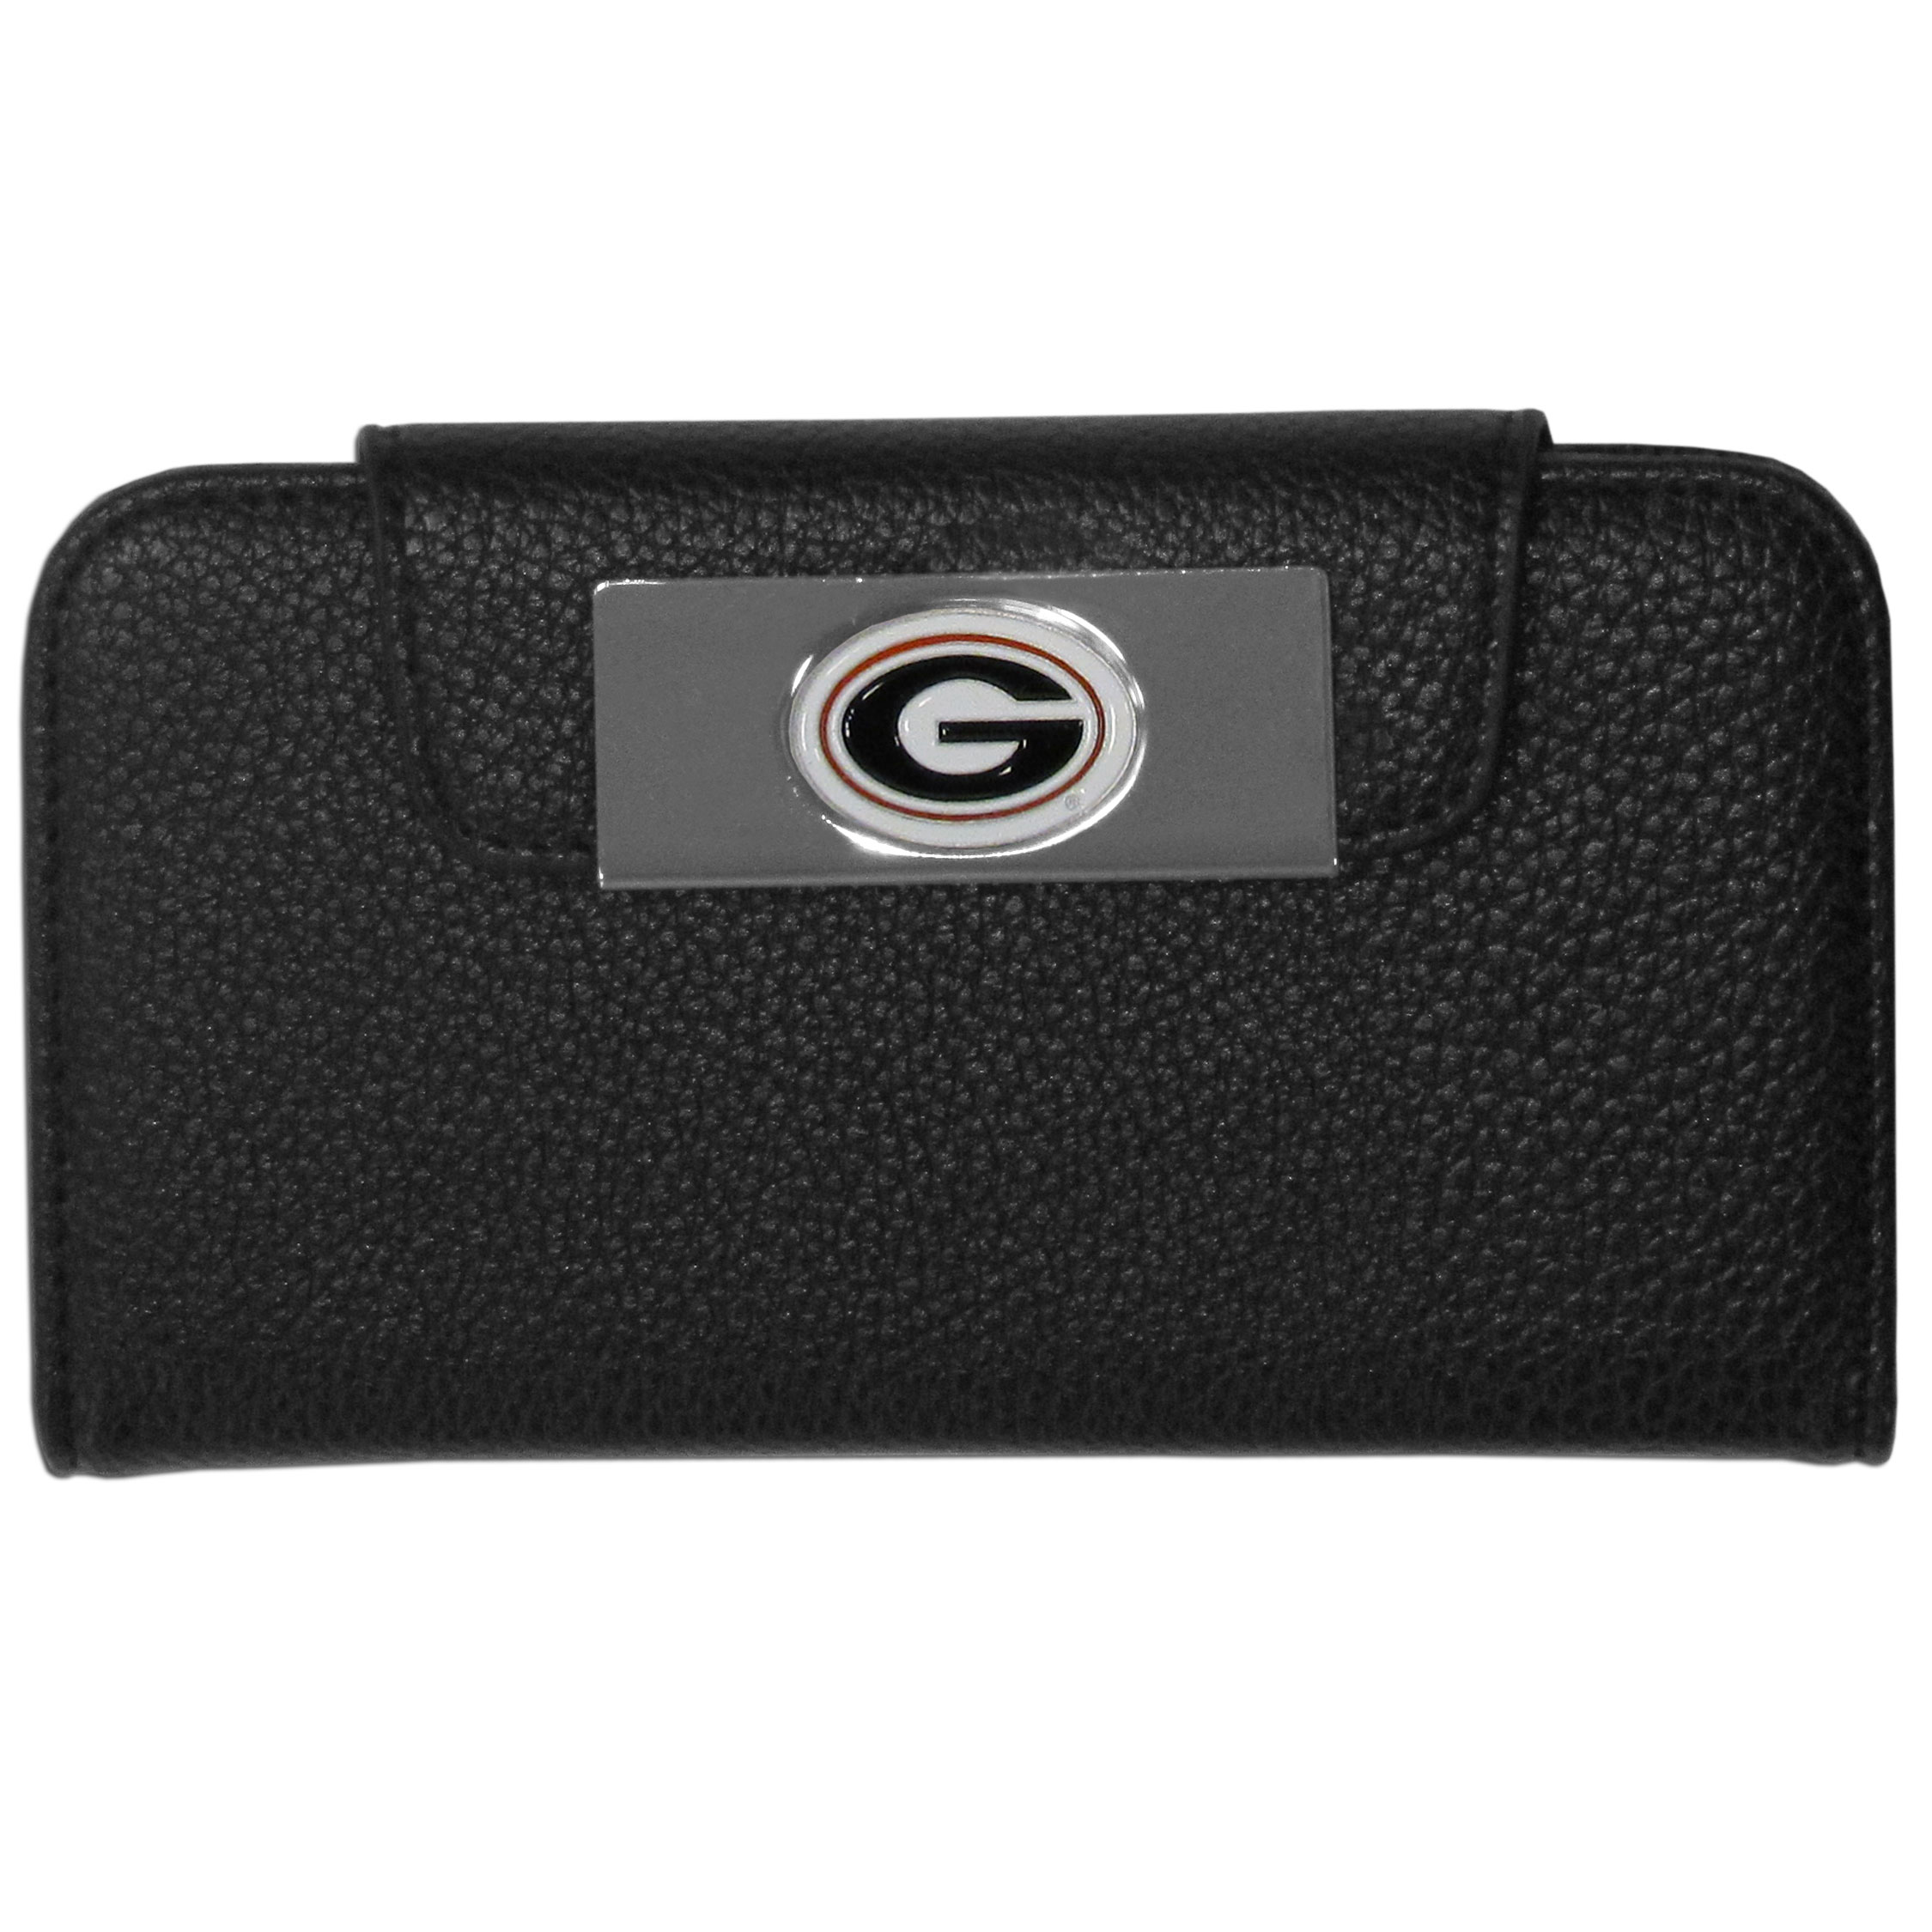 Georgia Bulldogs Samsung Galaxy S4 Wallet Case - This new & wildly popular case is ideal for those who like to travel light! The stylish case has an inner hard shell that securely holds your phone while allowing complete access to the phone's functionality. The flip cover has slots for credit cards, business cards and identification. The magnetic flip cover has a metal Georgia Bulldogs emblem on a high polish chrome backing. Fits the Samsung Galaxy S4